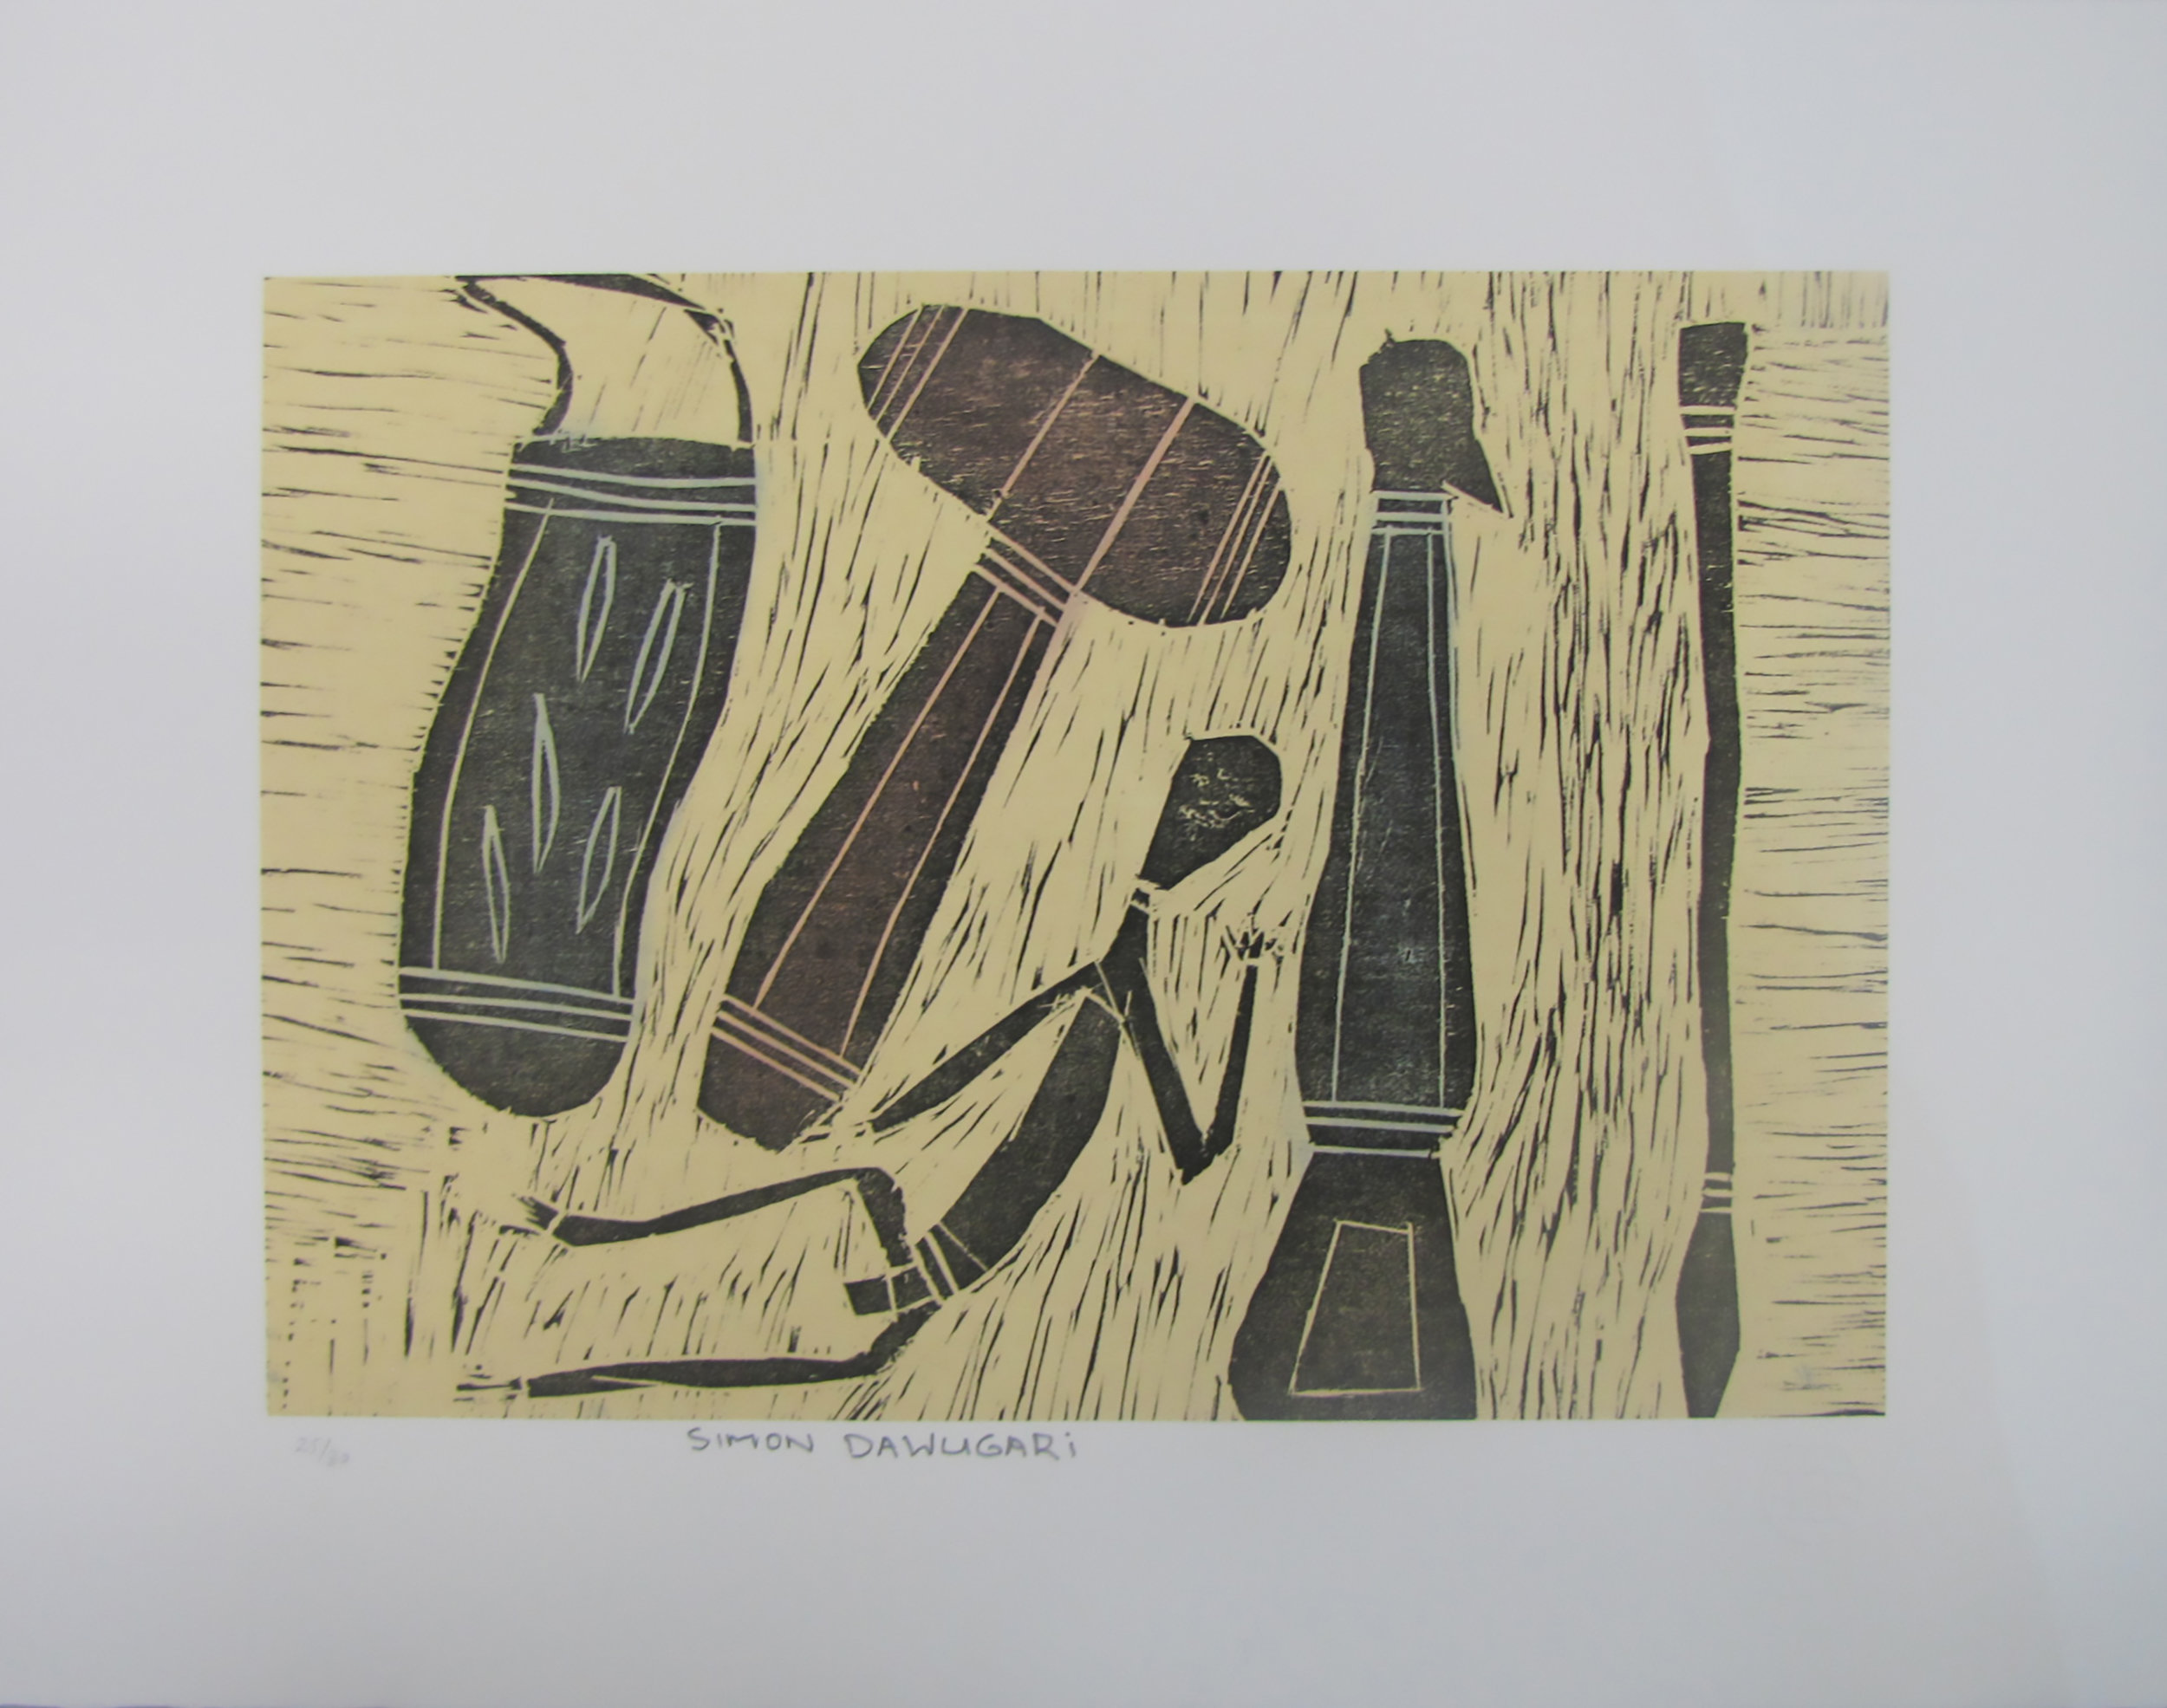 Simon Ashley, Tools and Figures. 2013   Woodcut. Exhibition Proof   21 x 30 cm  $220 unframed    Editions 24/30, 25/30, 27/30 & 28/30 (unframed) also available